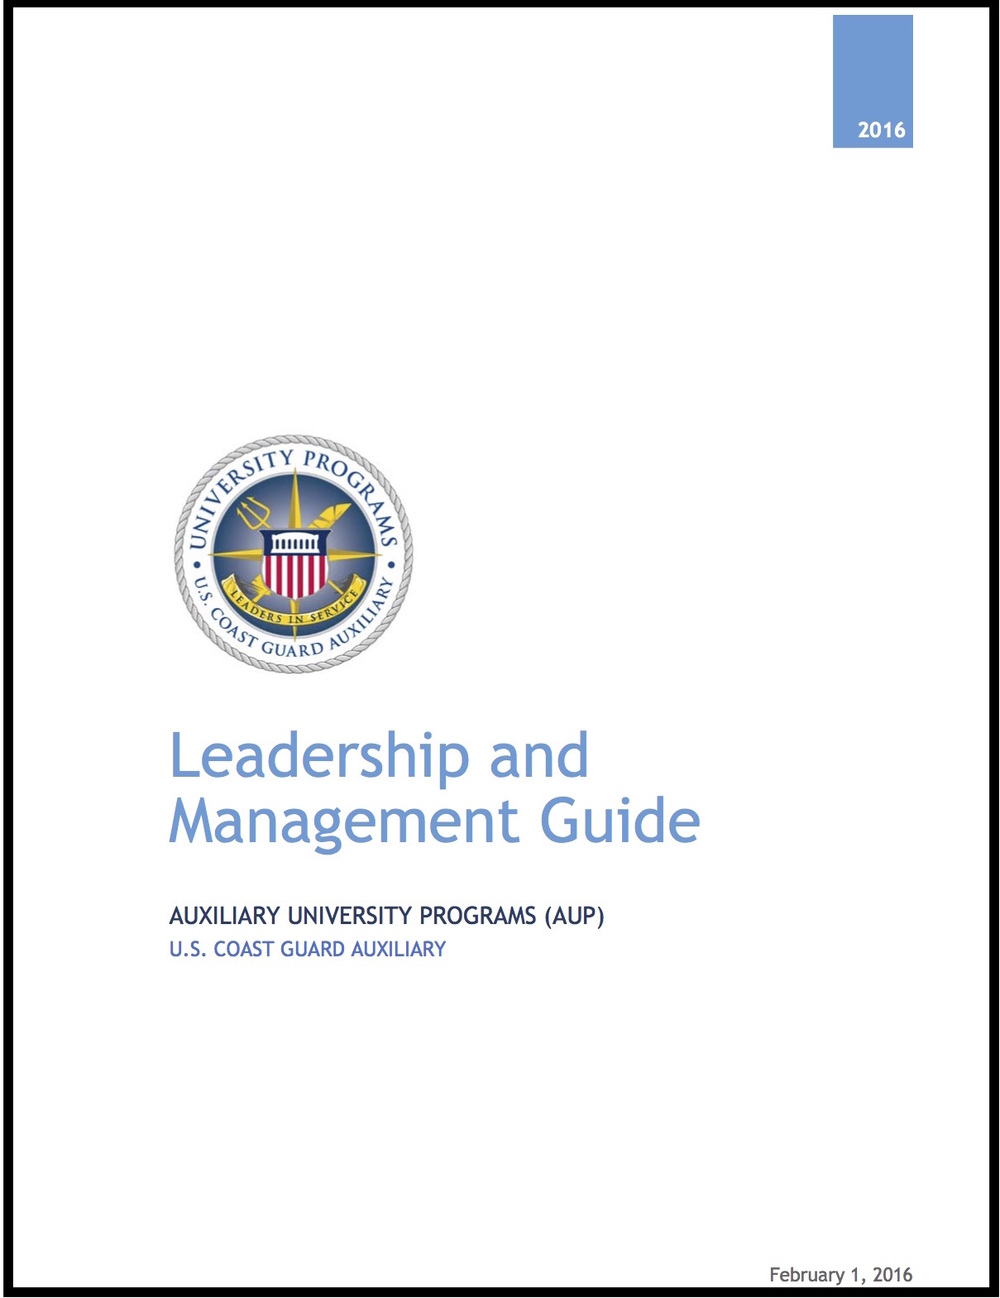 Click to access the full Leadership and Management Guide